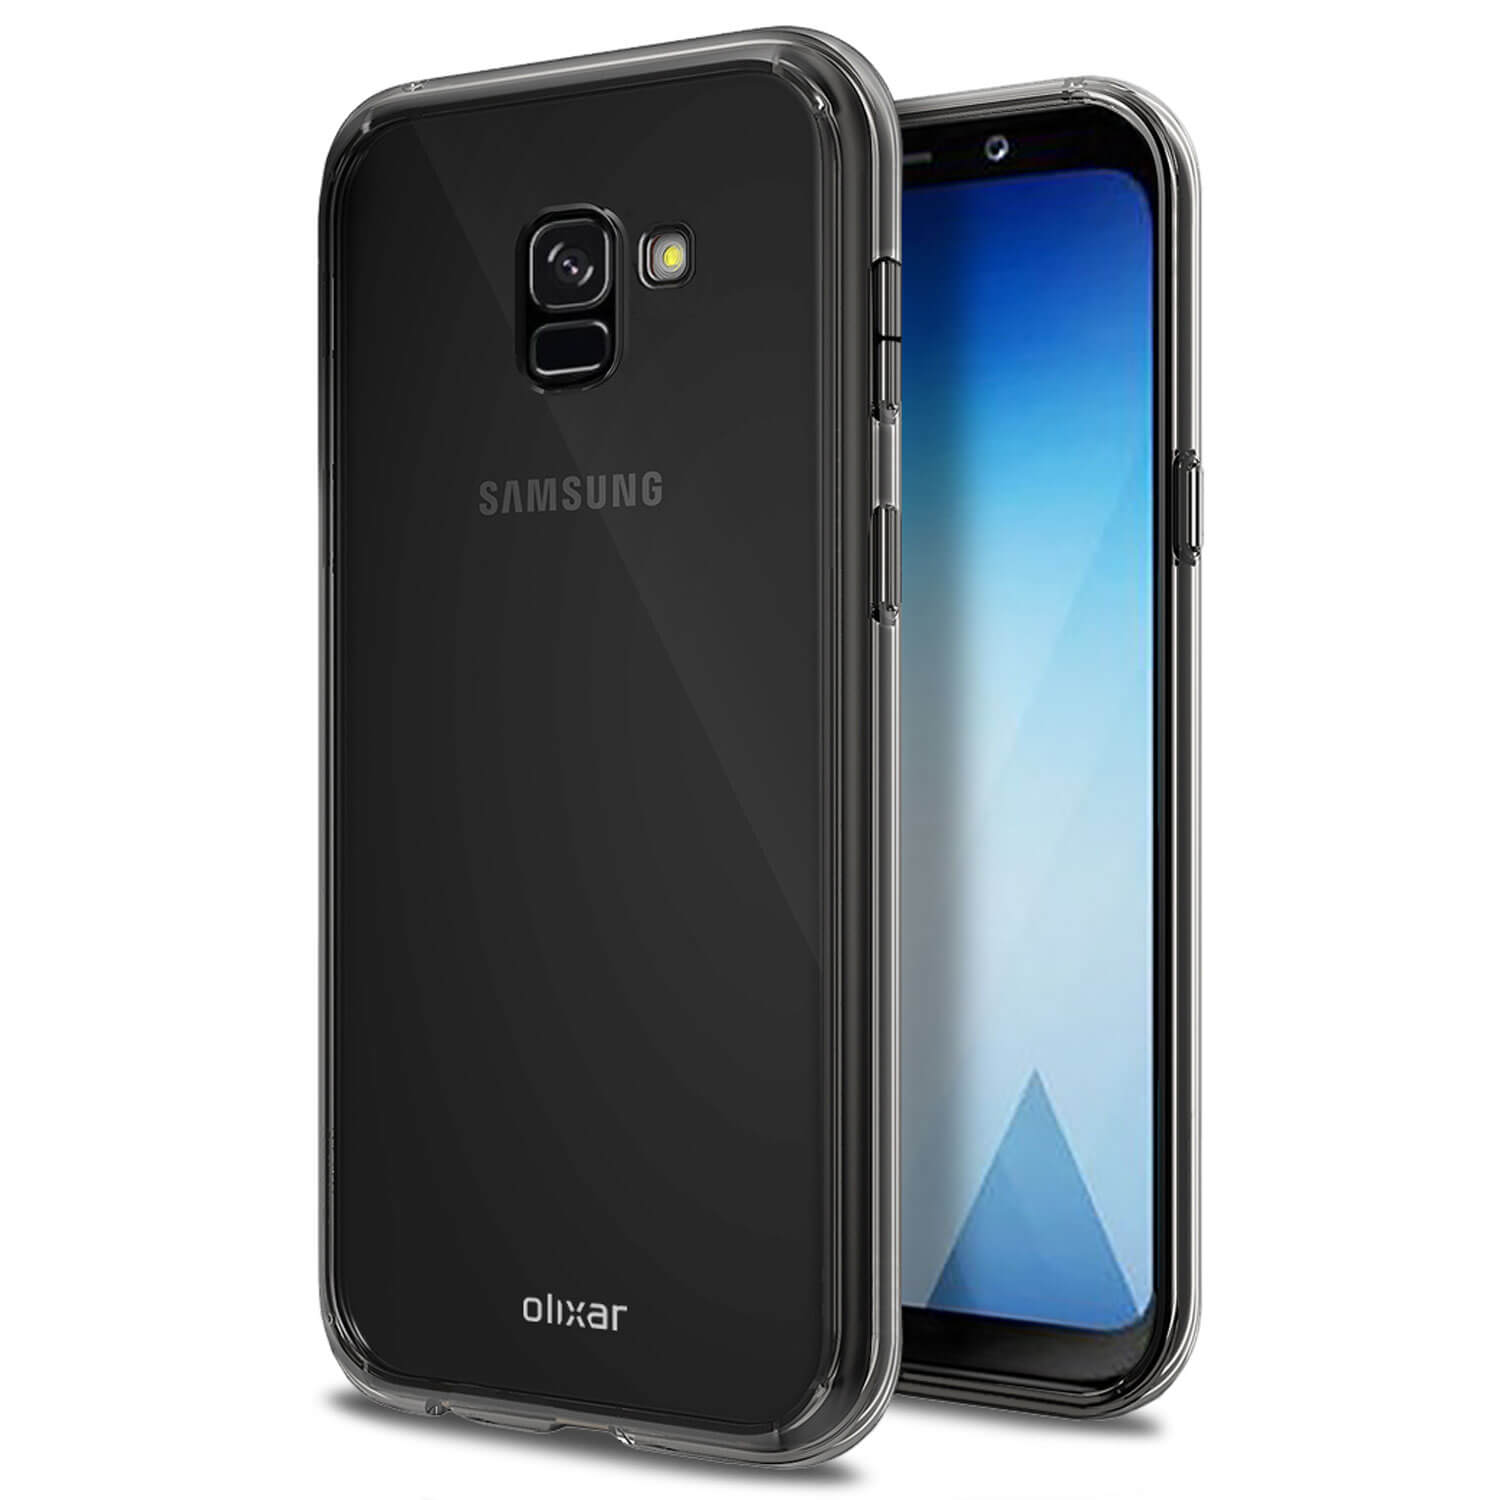 Samsung Galaxy A5 2018 Android Smartphone